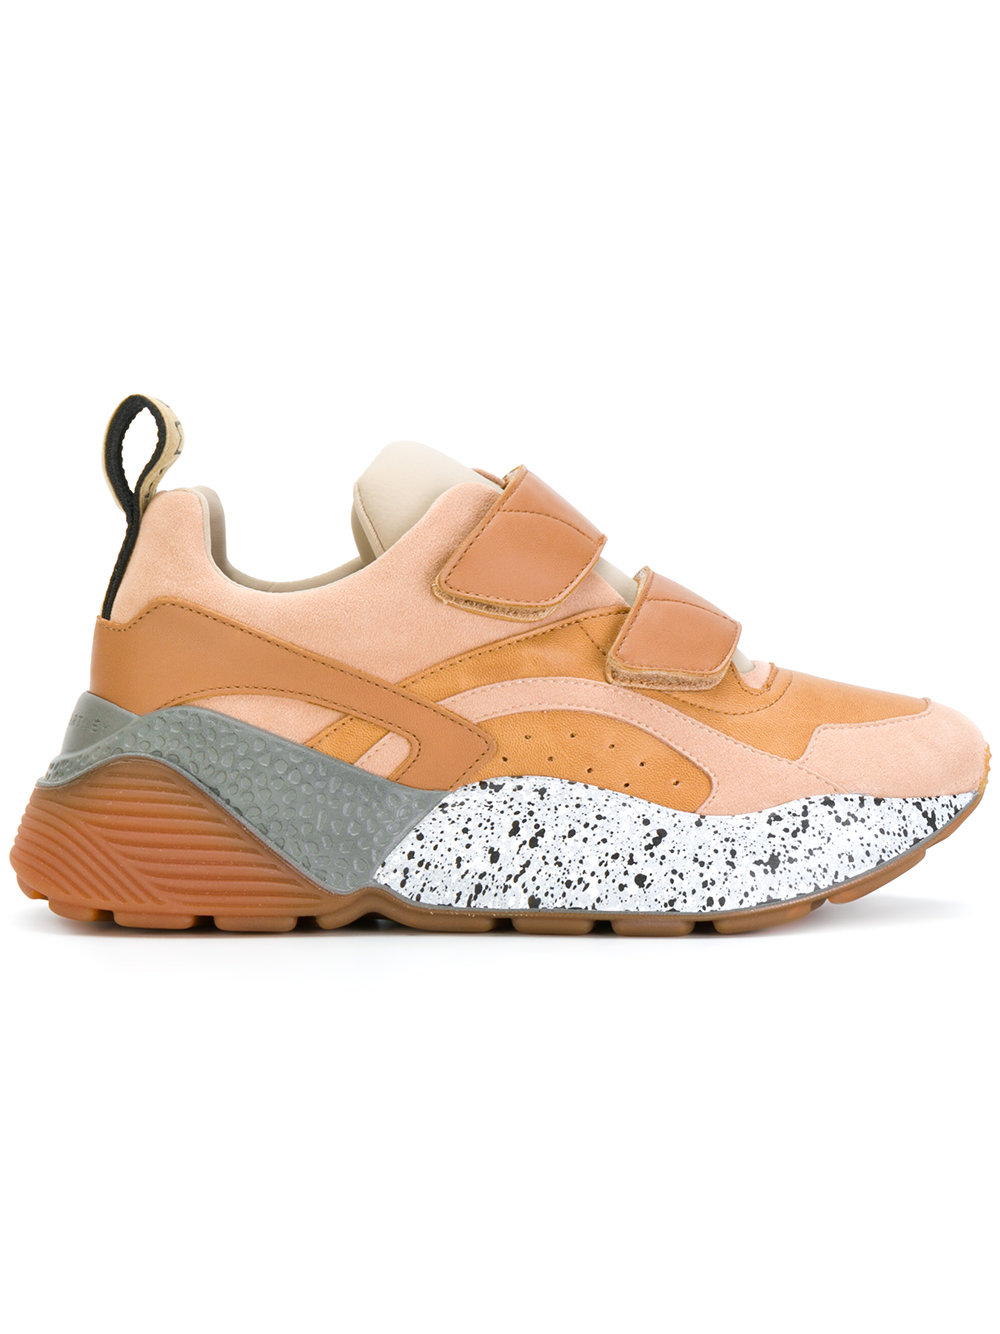 - UGLY SNEAKER.ECLYPSE TOUCH SNAP SNEAKER / Stella McCartney $640 at Farfetch